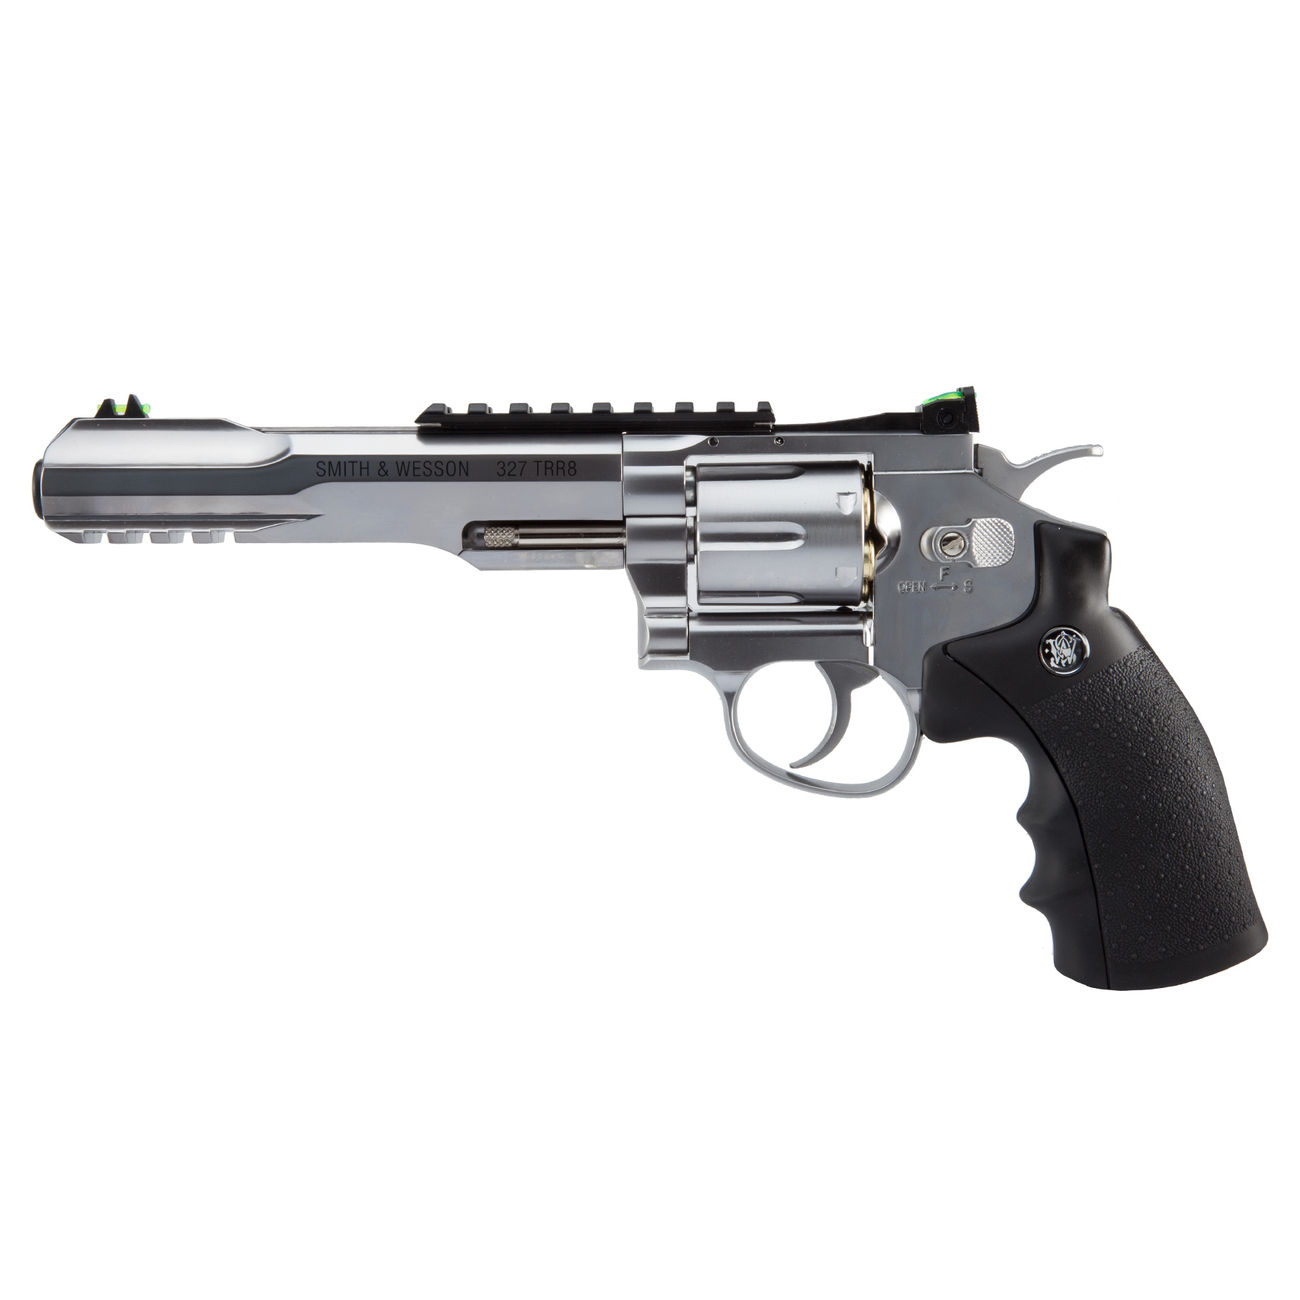 smith wesson mod 327 trr8 co2 revolver 4 5mm bb nickel vollmetall g nstig kaufen kotte zeller. Black Bedroom Furniture Sets. Home Design Ideas